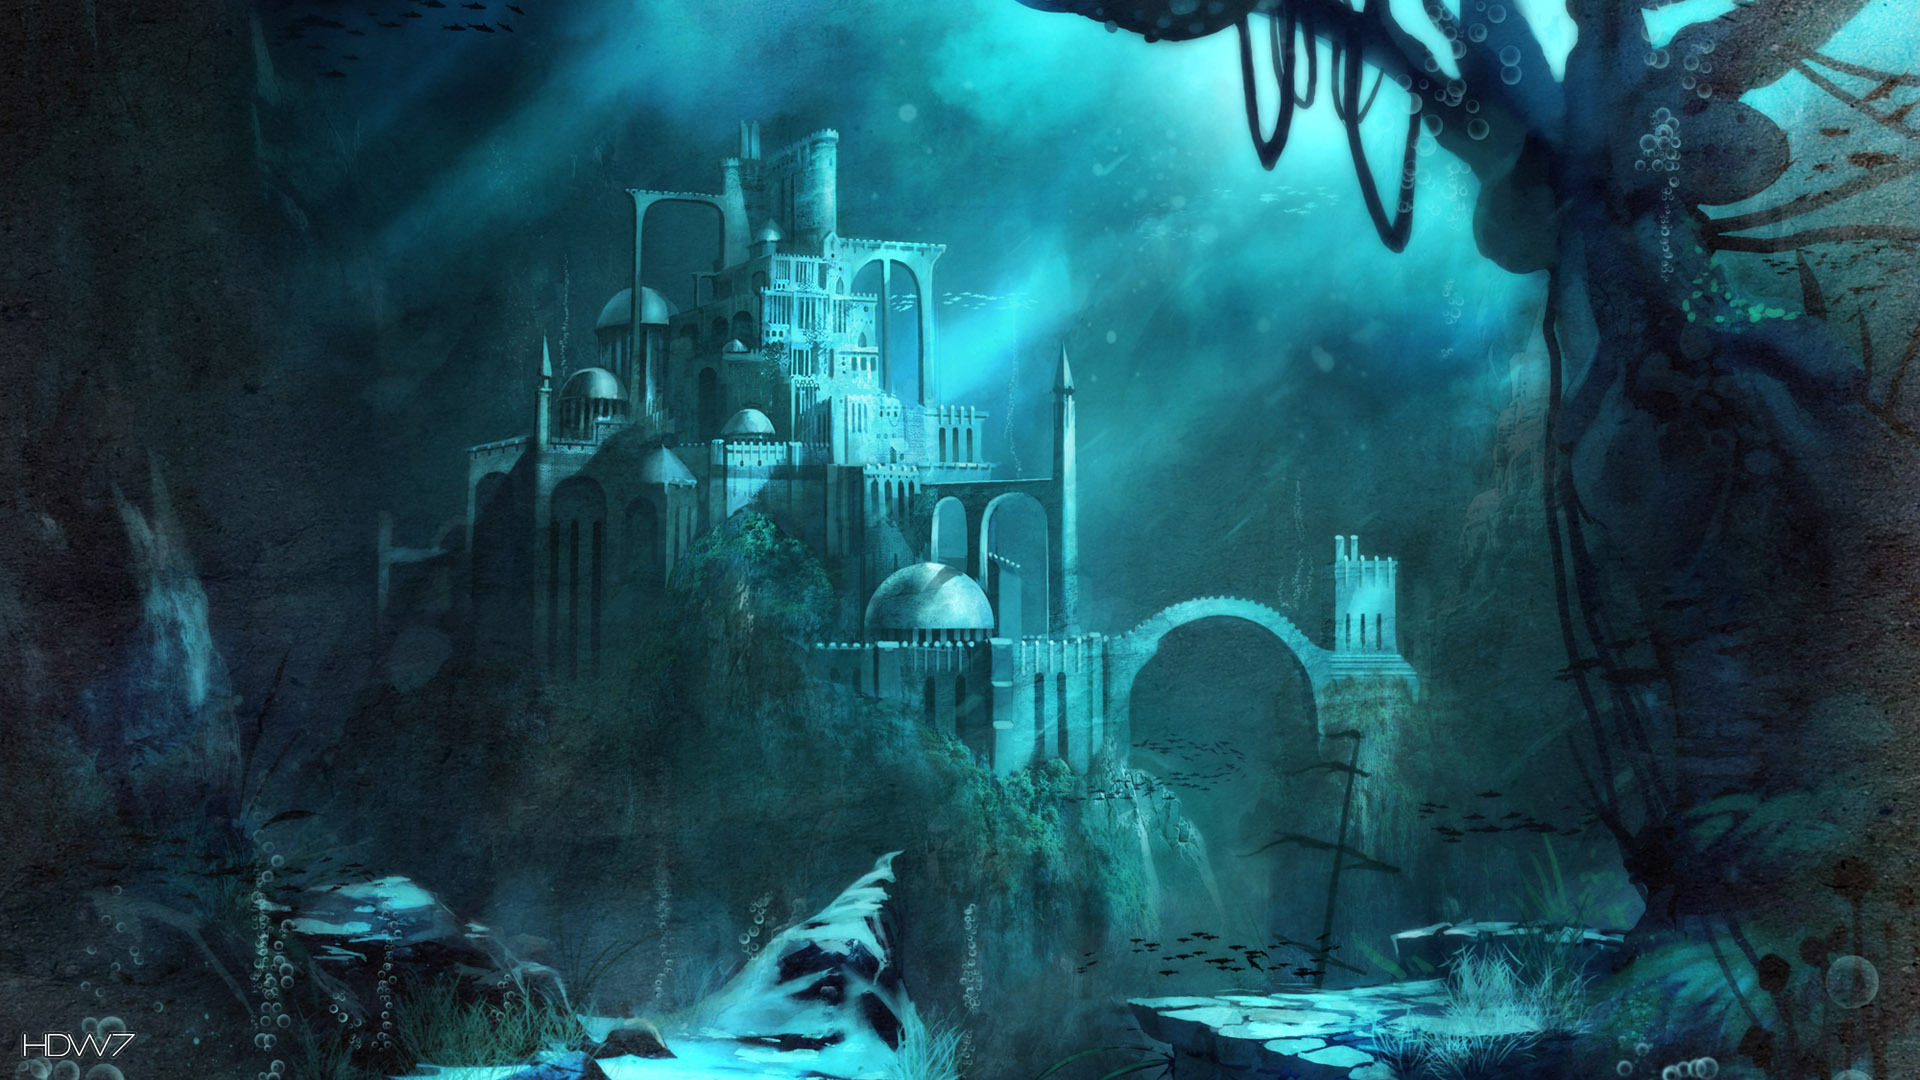 trine 2 underwater castle widescreen hd wallpaper